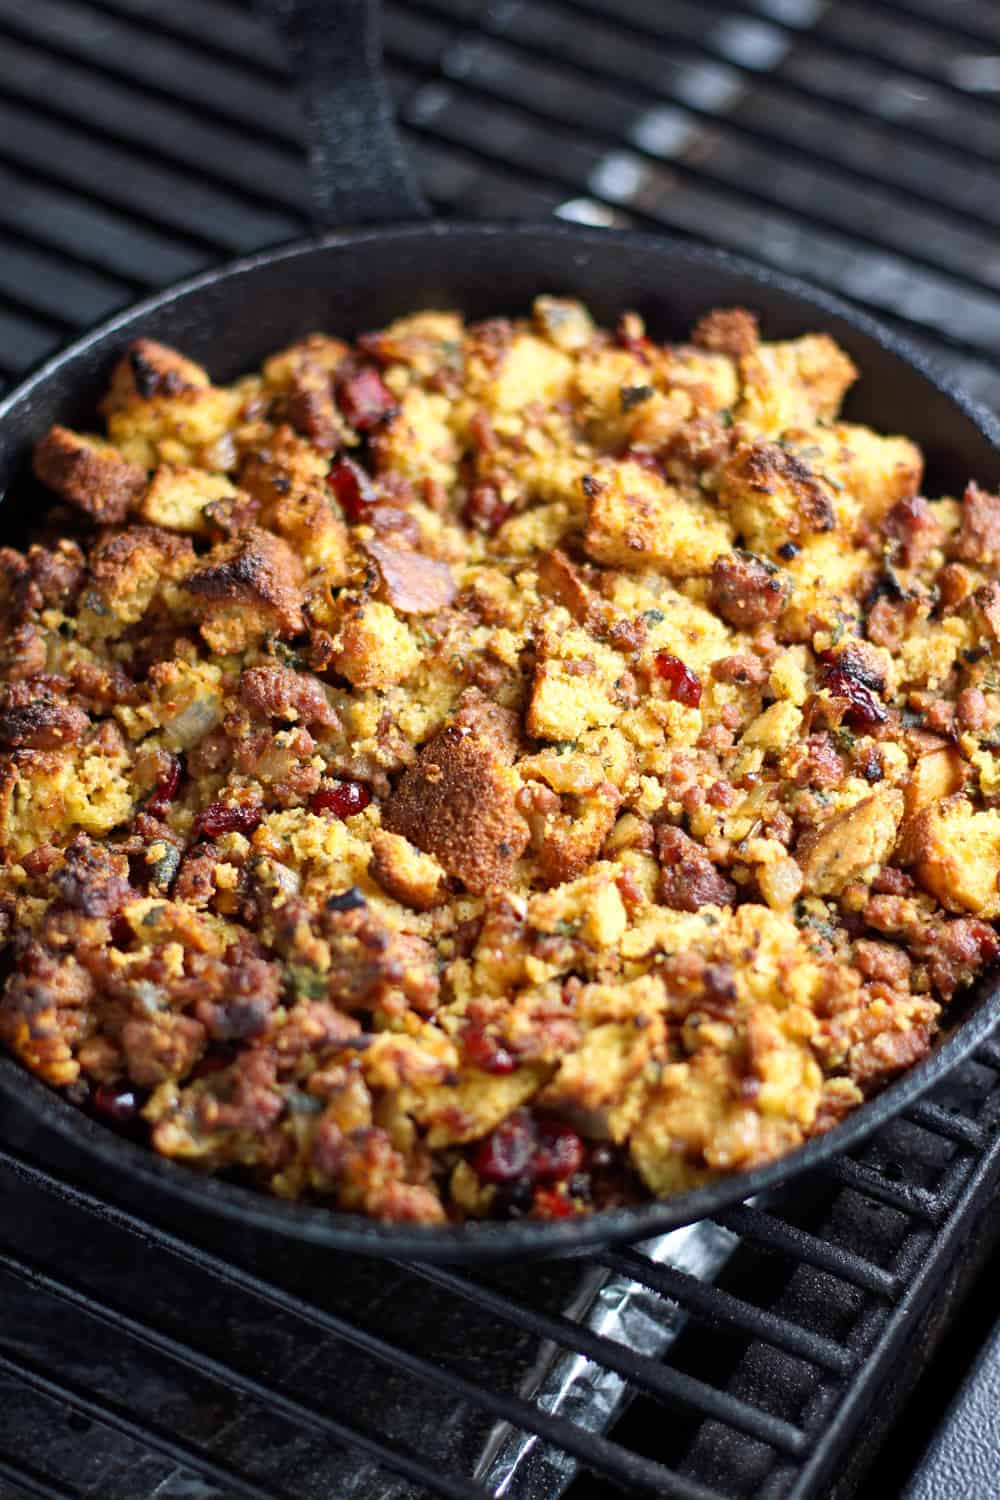 Smoked Sausage and Cornbread Stuffing with Sage and Caramelized Onions